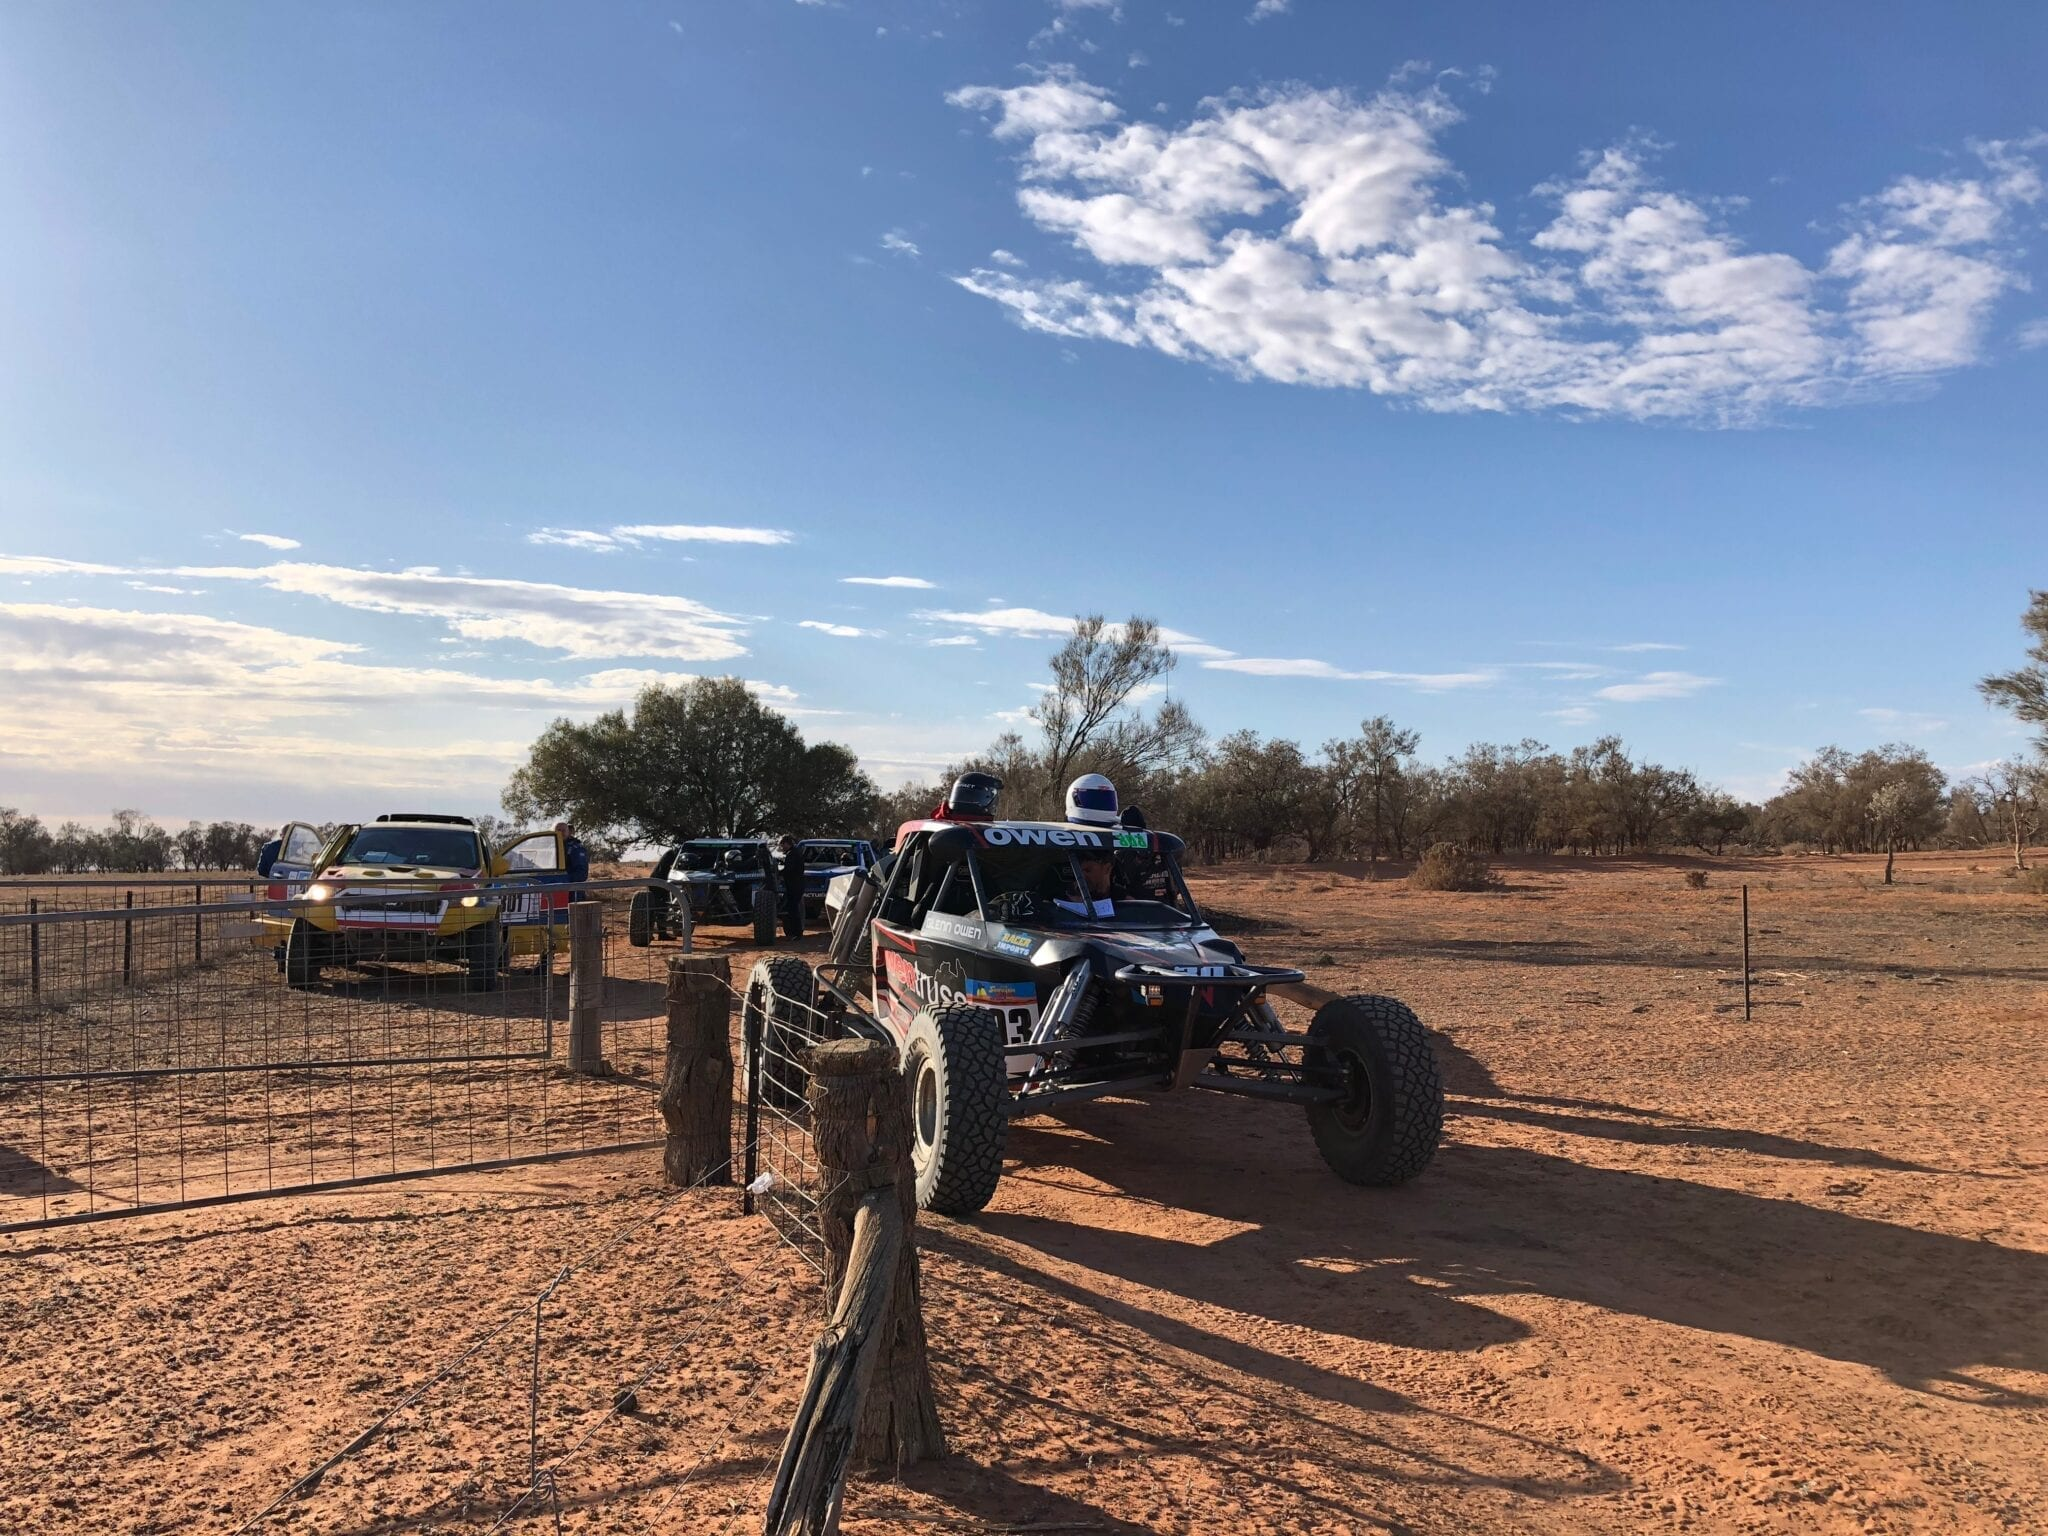 Cars waiting to start on a stage during the Sunraysia Safari.